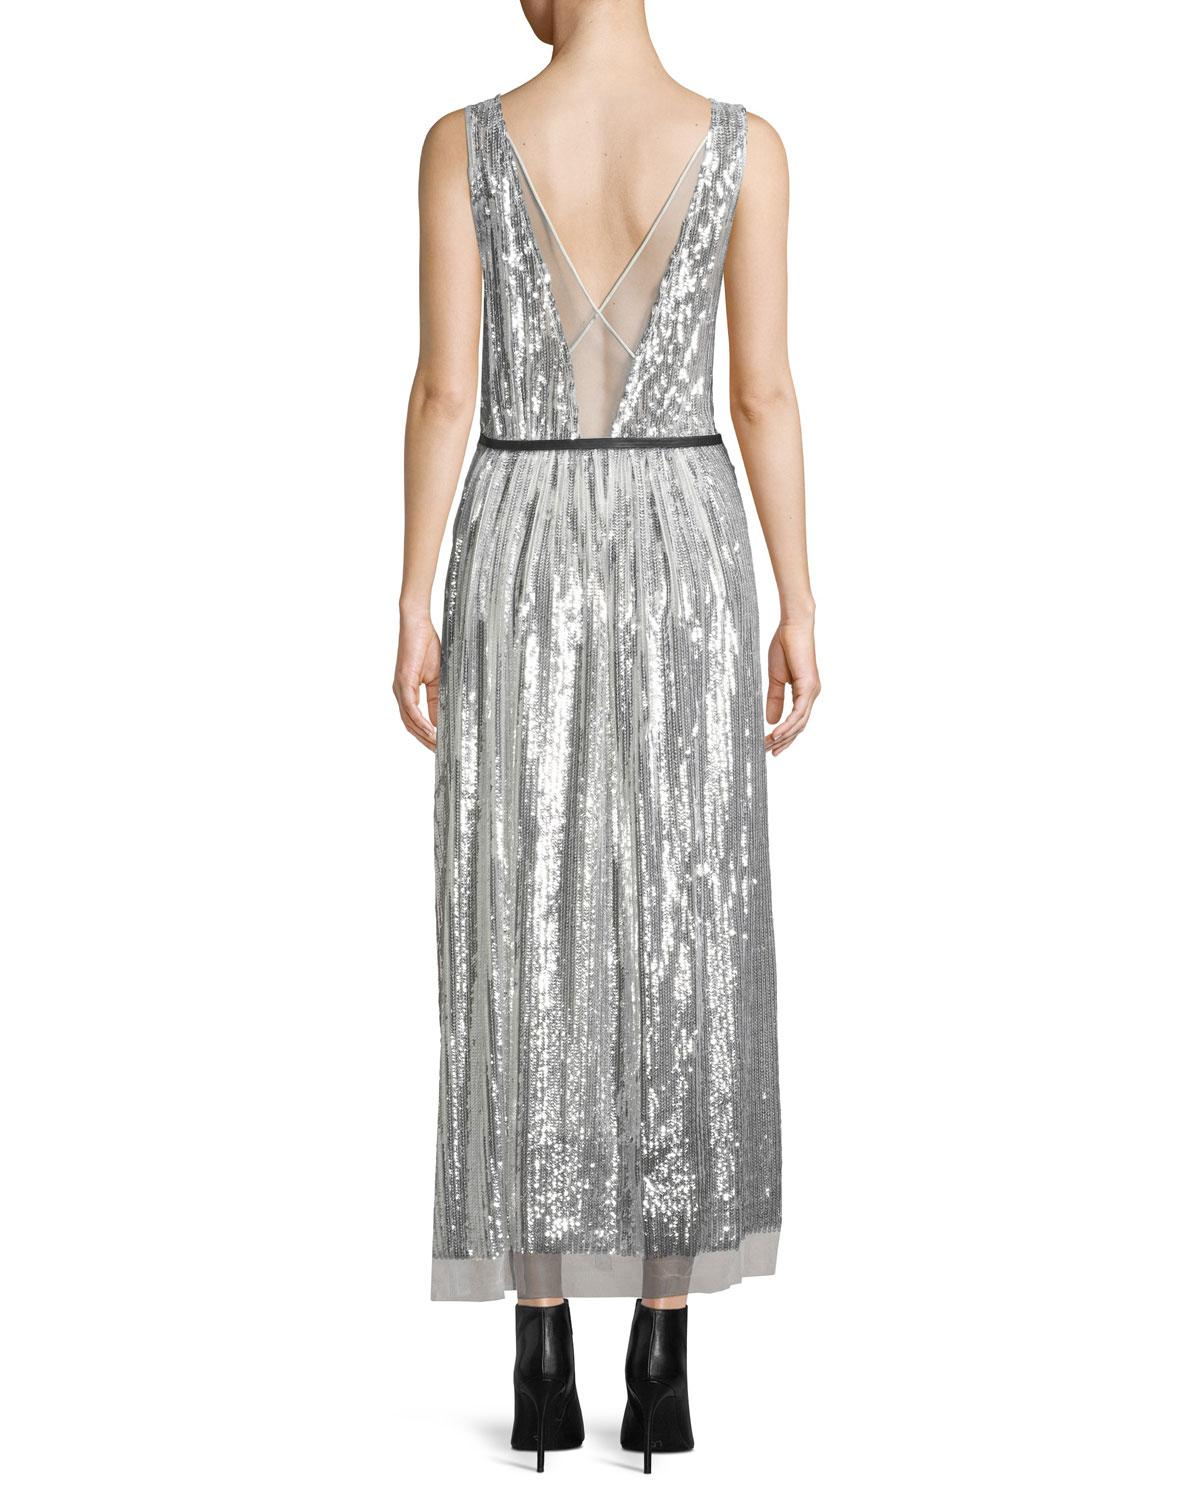 6baa926f1dd7 marc-jacobs-SILVER-Scoop-neck-Sleeveless-Mirrored-sequins-Belted-Cocktail- Dress.jpeg